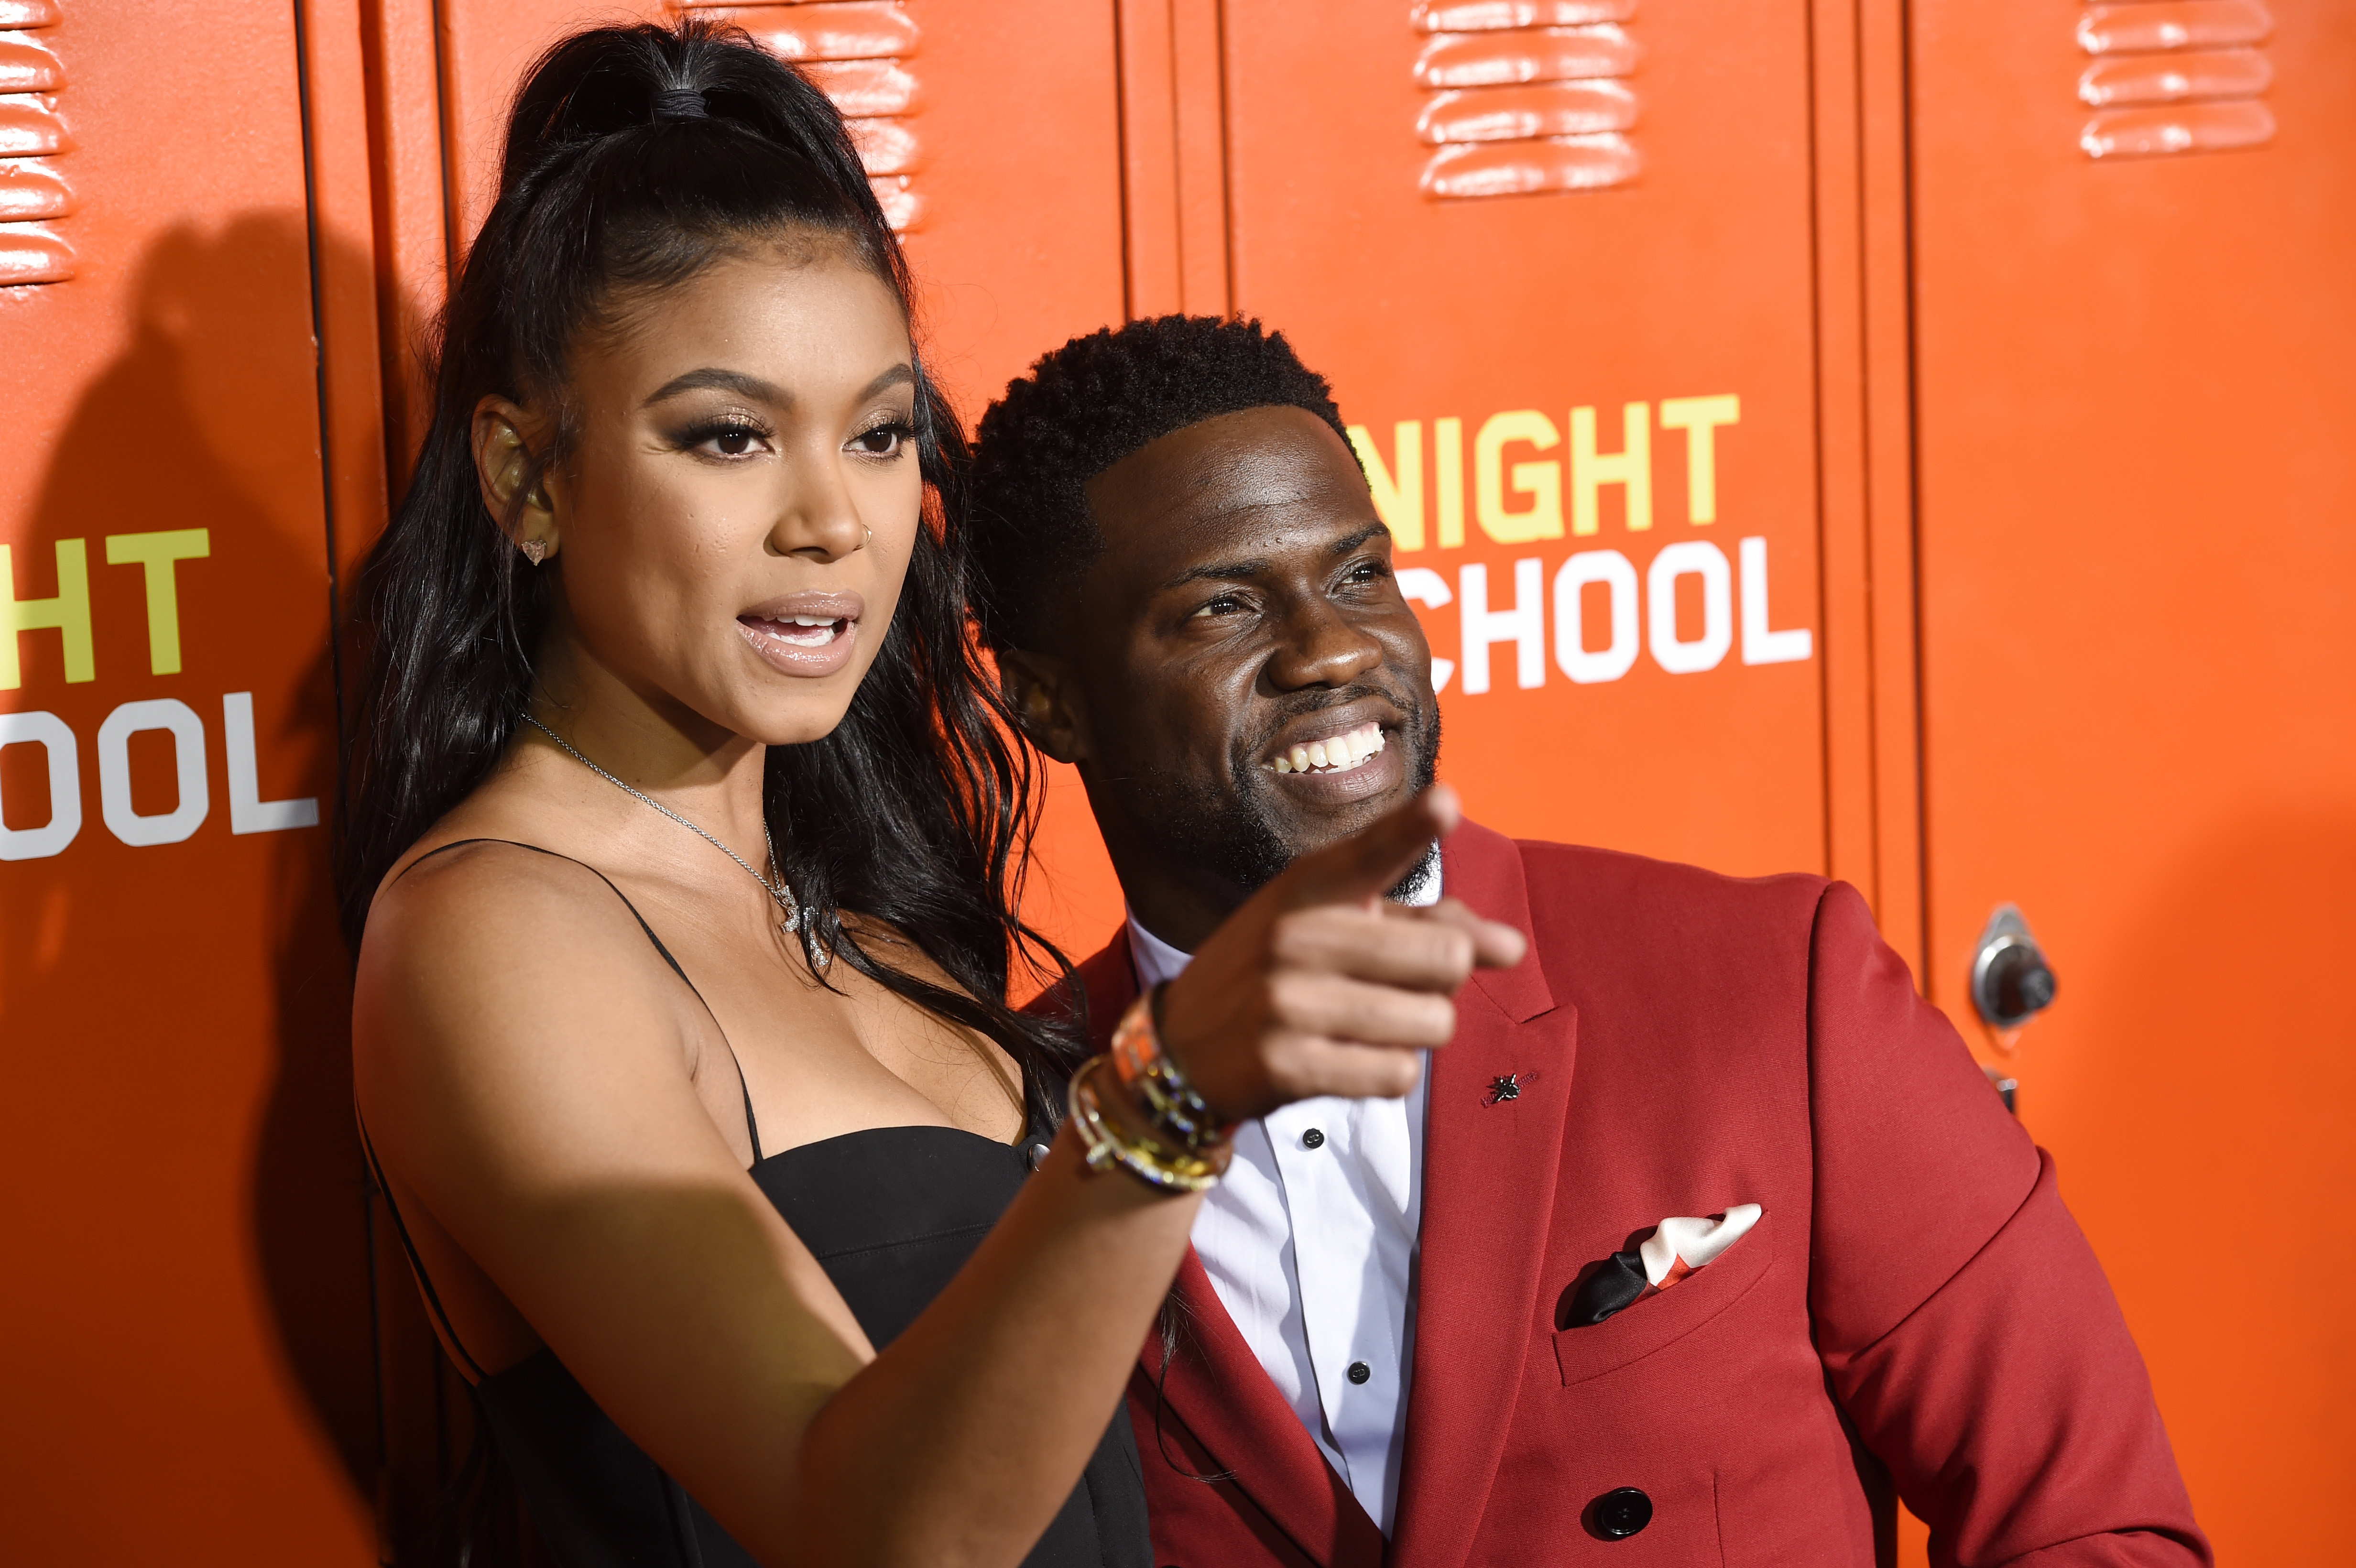 """Kevin Hart, right, a cast member, producer and co-writer of """"Night School,"""" poses with his wife Eniko Parrish at the premiere of the film, Monday, Sept. 24, 2018, in Los Angeles. (Photo by Chris Pizzello/Invision/AP)"""